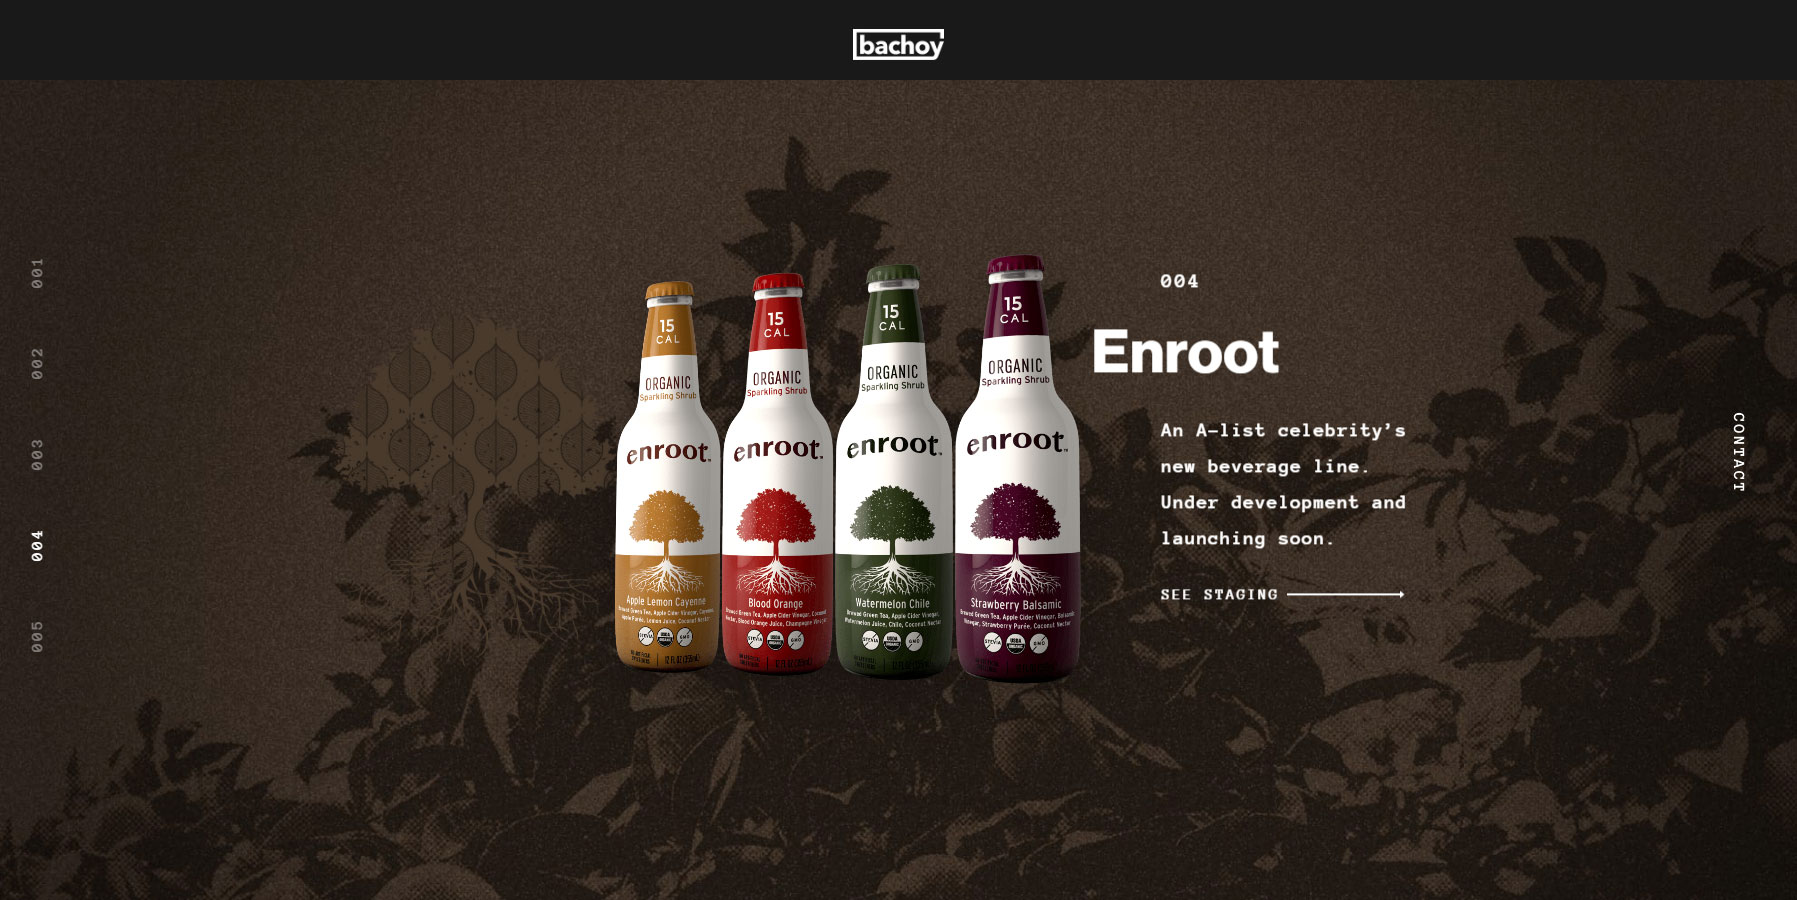 Bachoy - Website of the Day